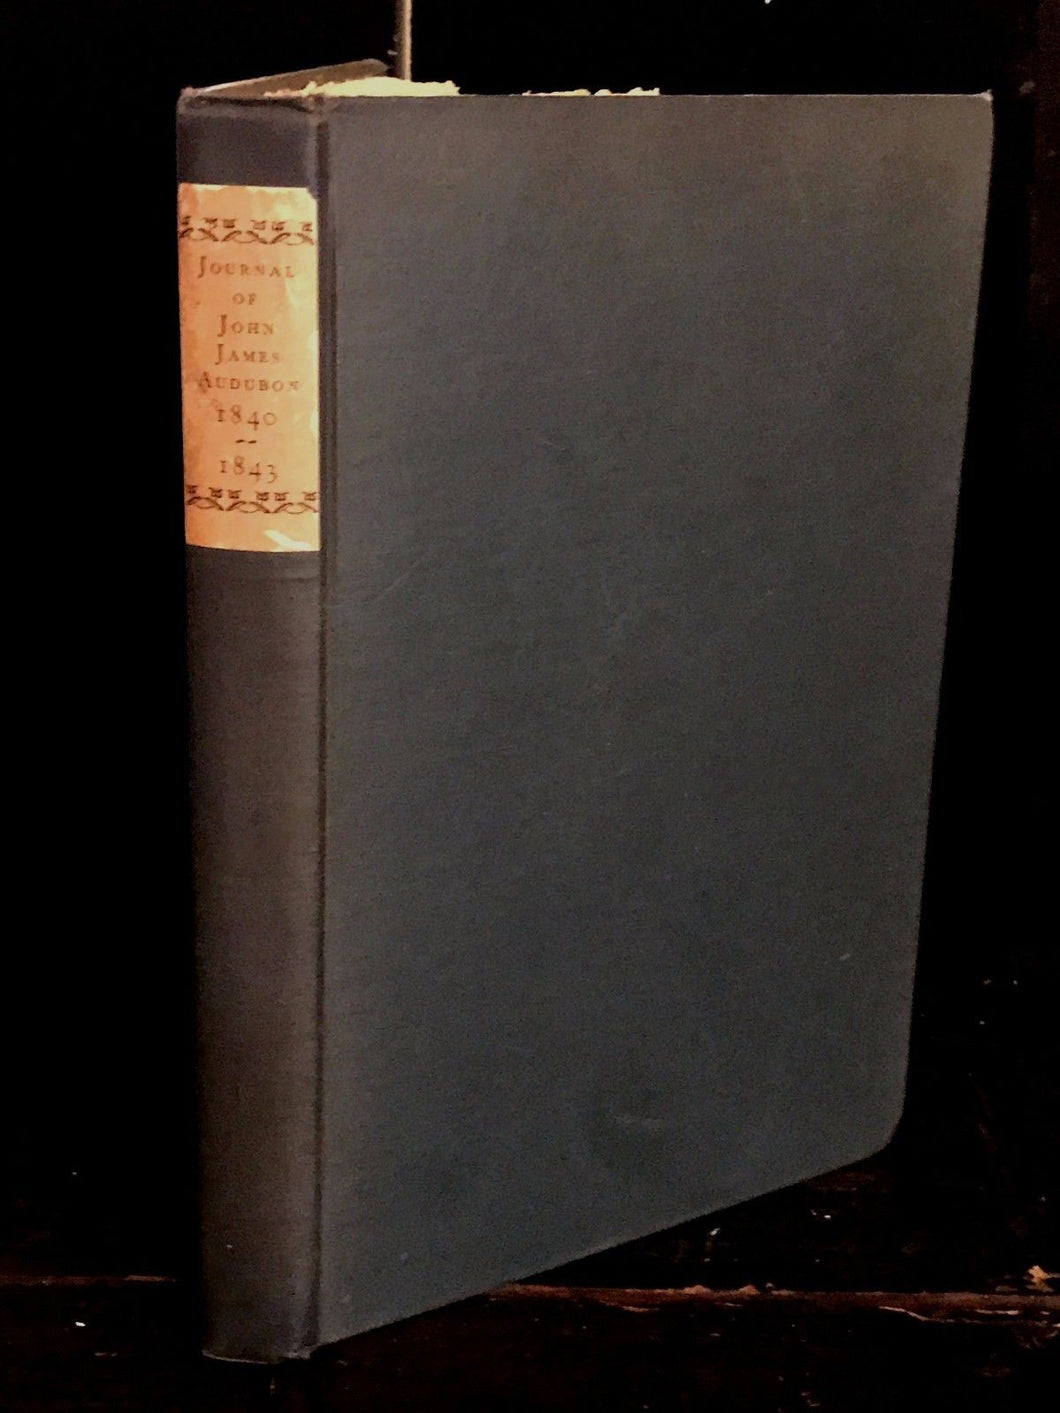 JOURNAL OF JOHN JAMES AUDUBON 1840-1843, Edited by Howard Corning 1st / 1st 1929